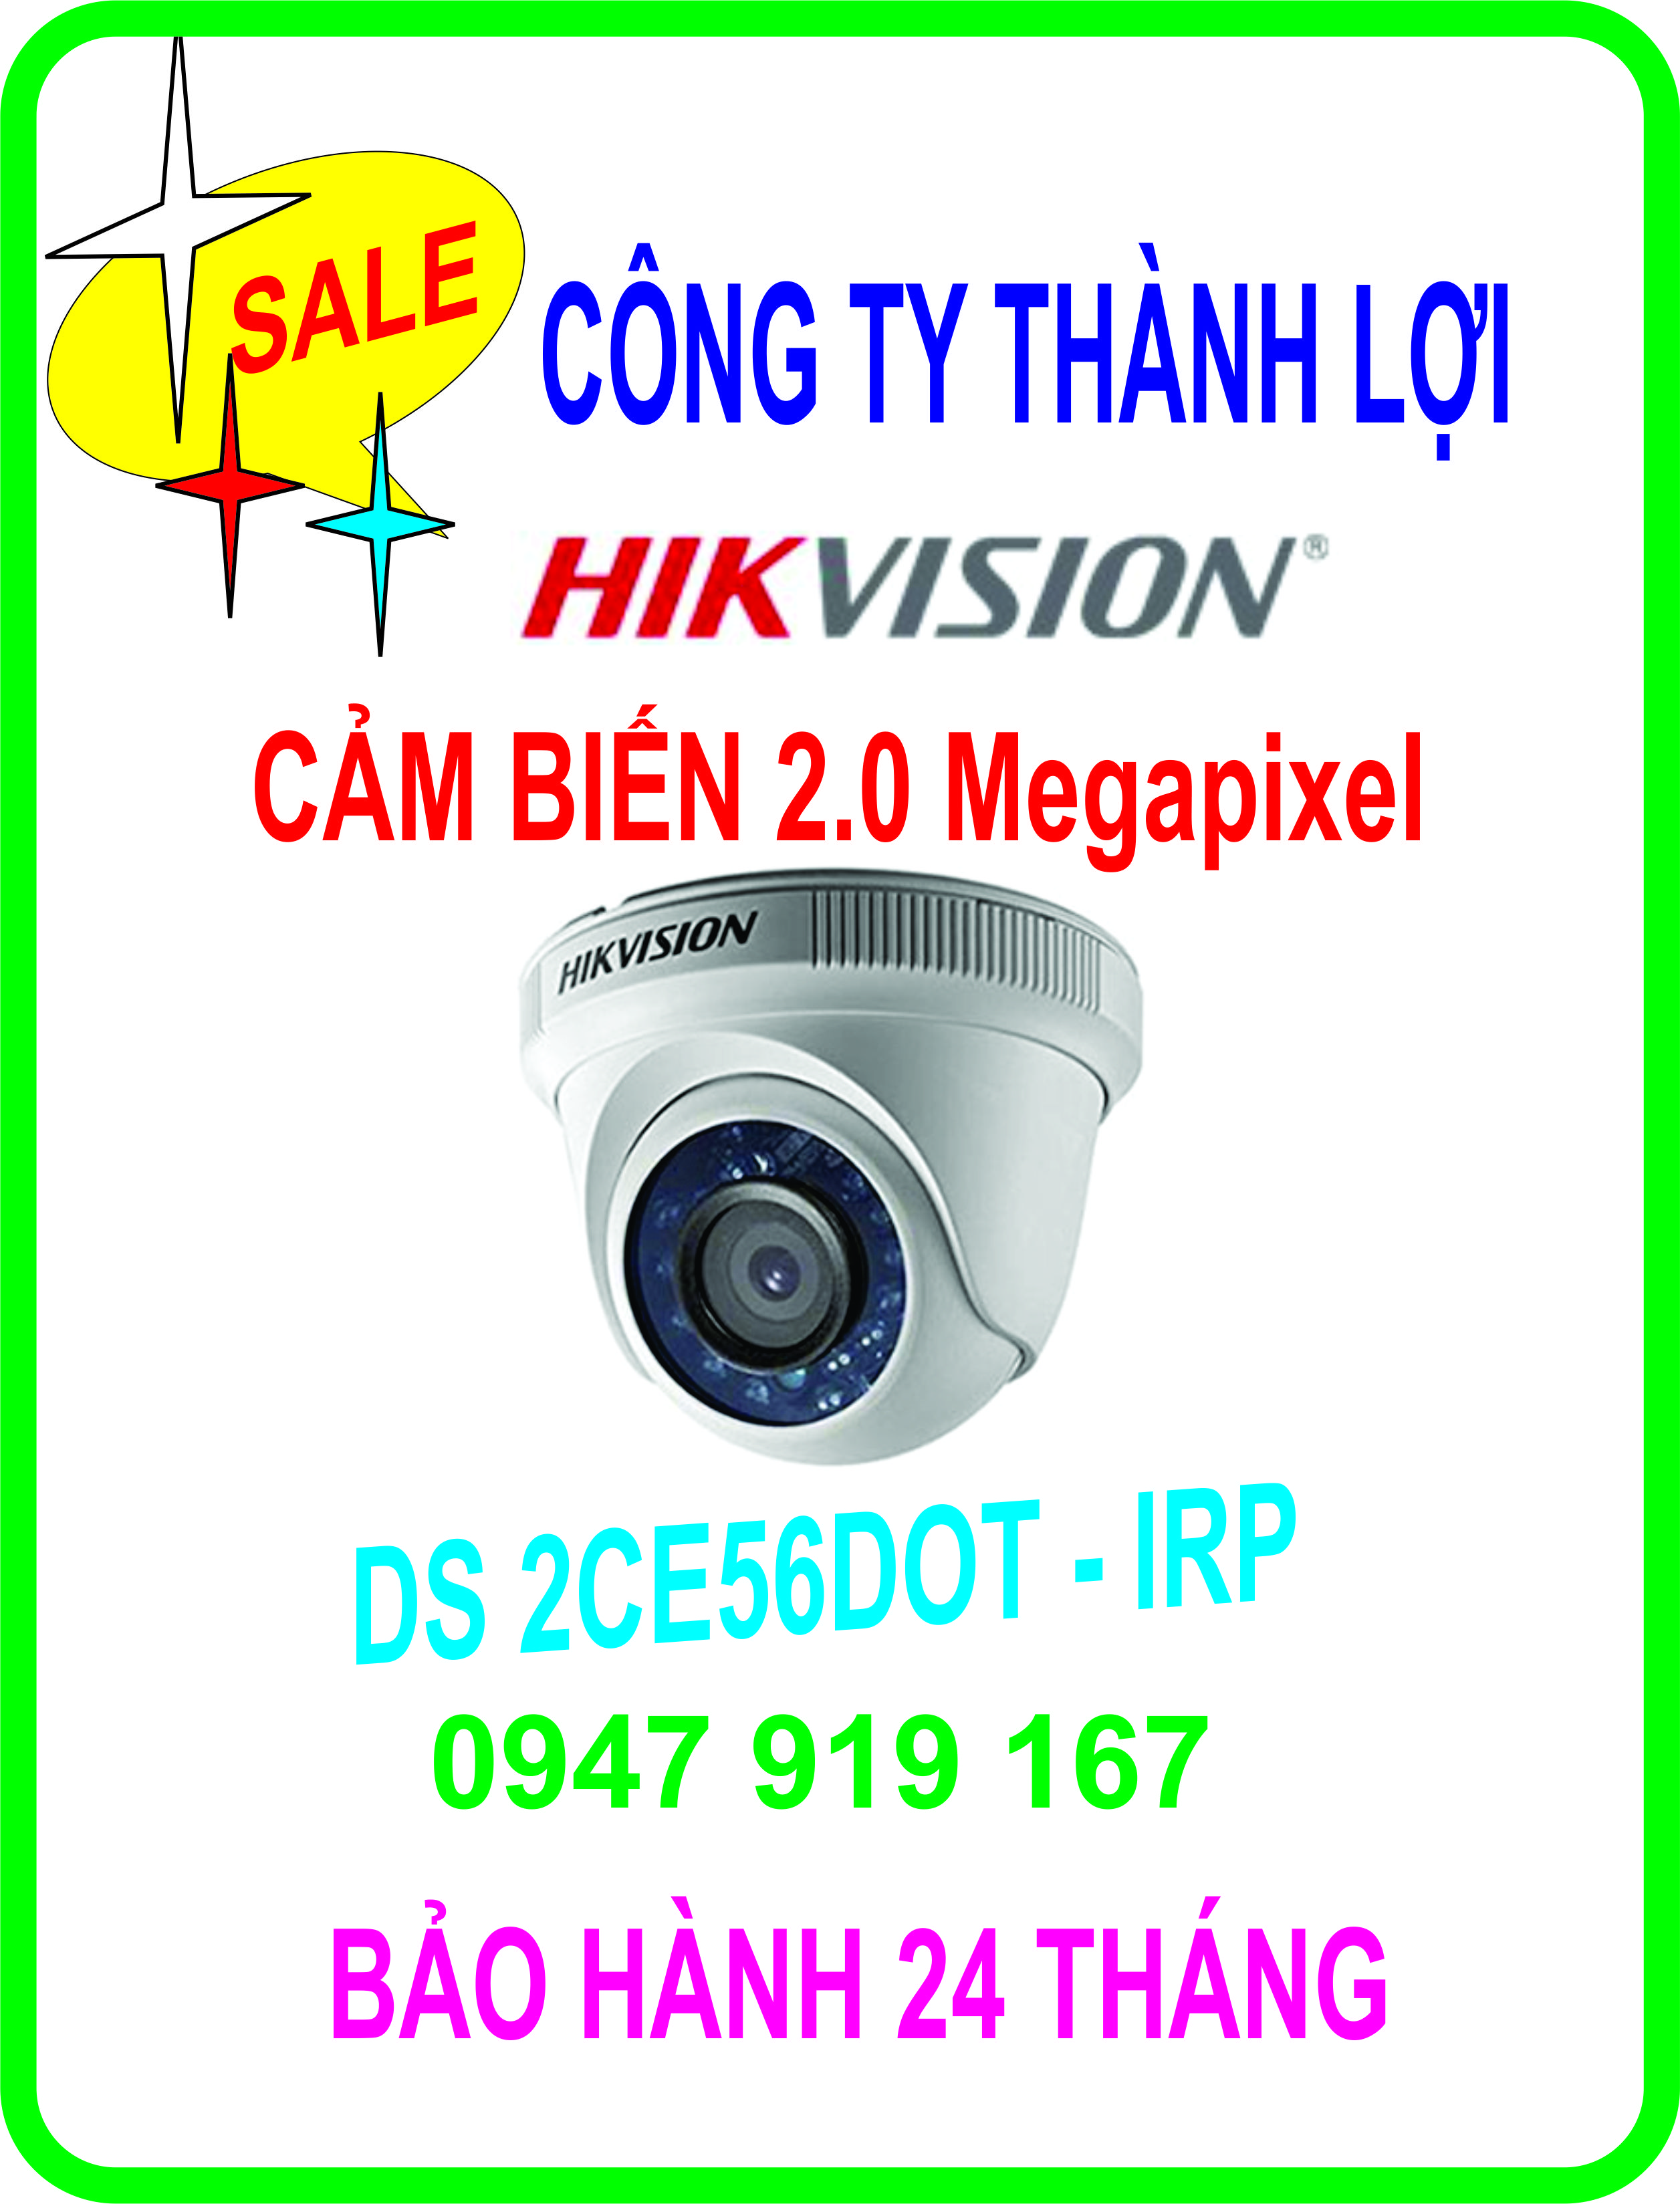 CAMERA HIKVISION DS 2CE56DOT-IRP